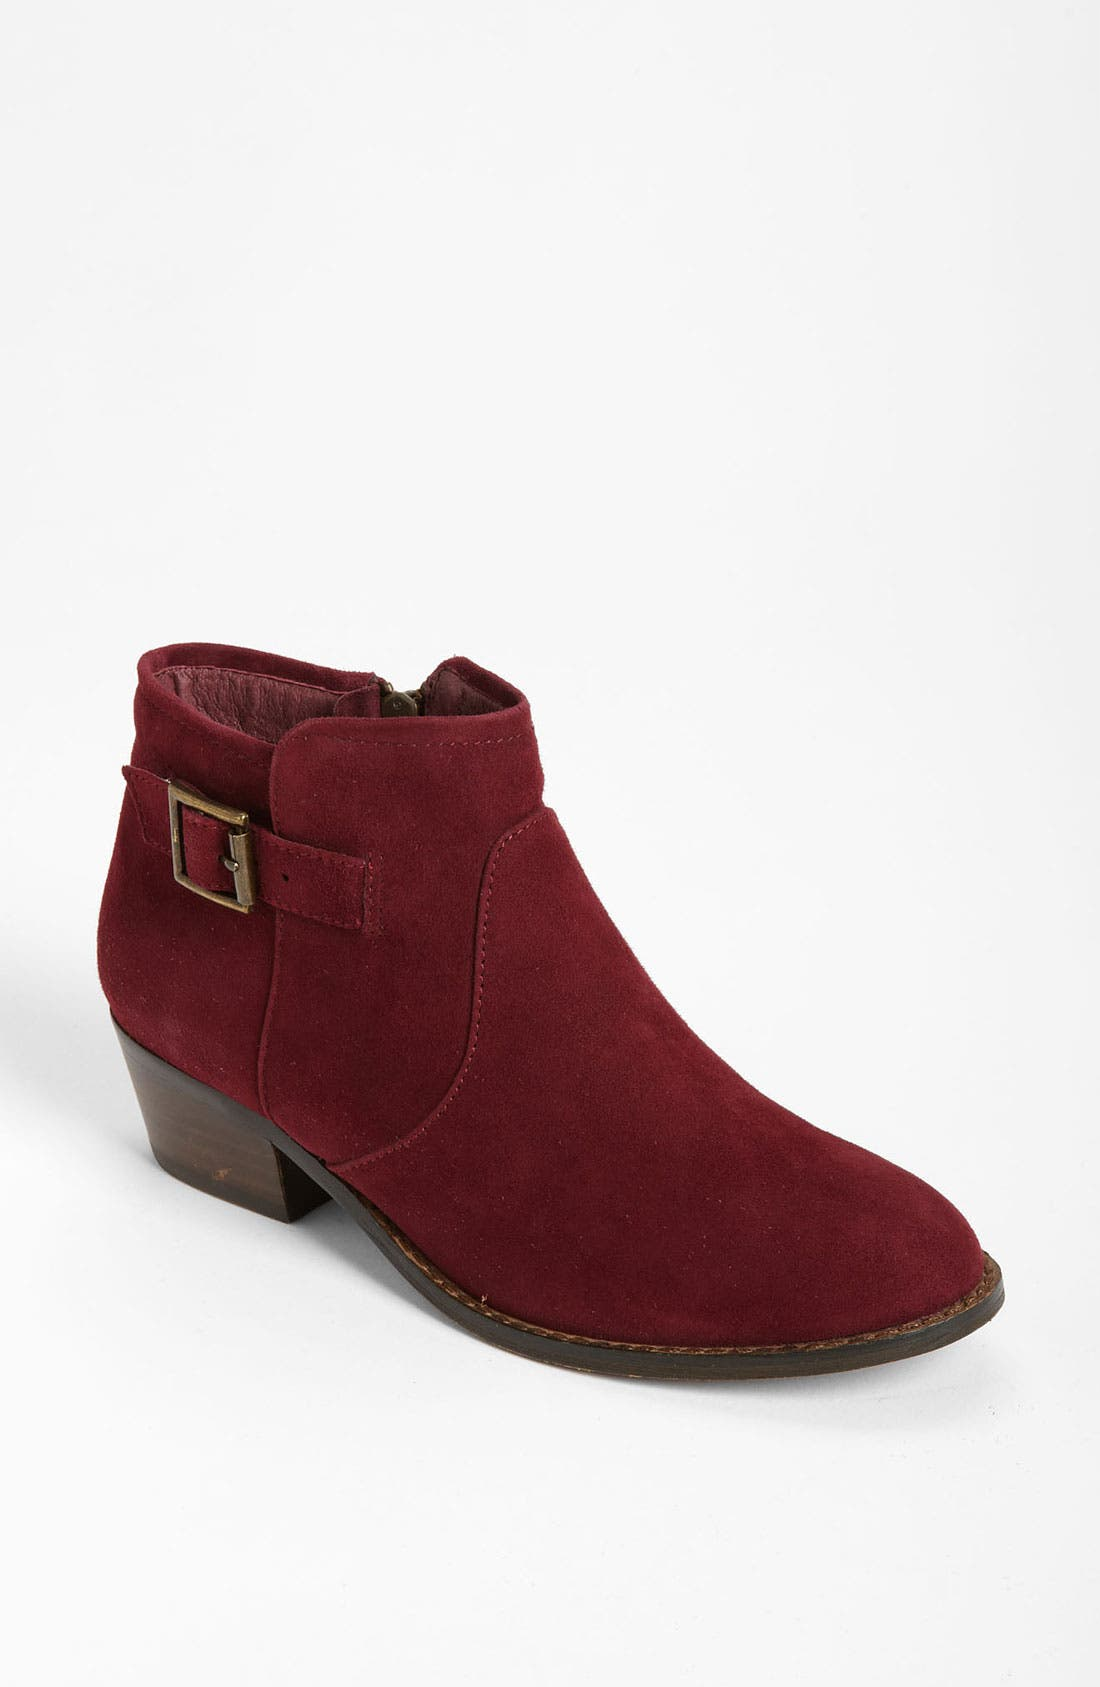 Main Image - Steve Madden 'Prizzze' Boot